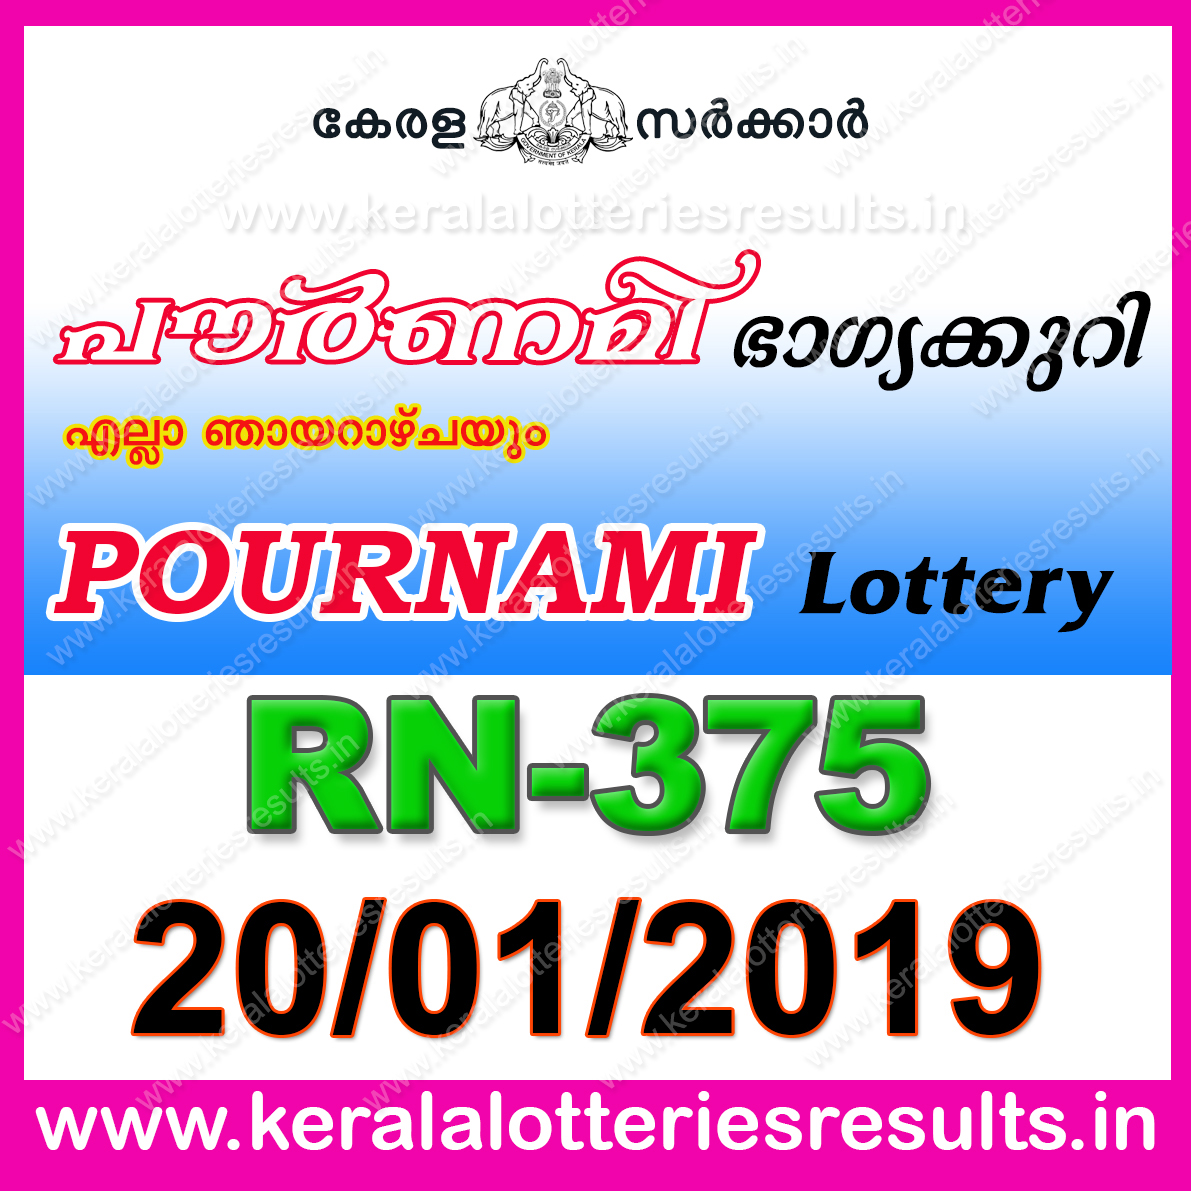 Kerala Lottery Result; 20-01-2019 Pournami Lottery Results